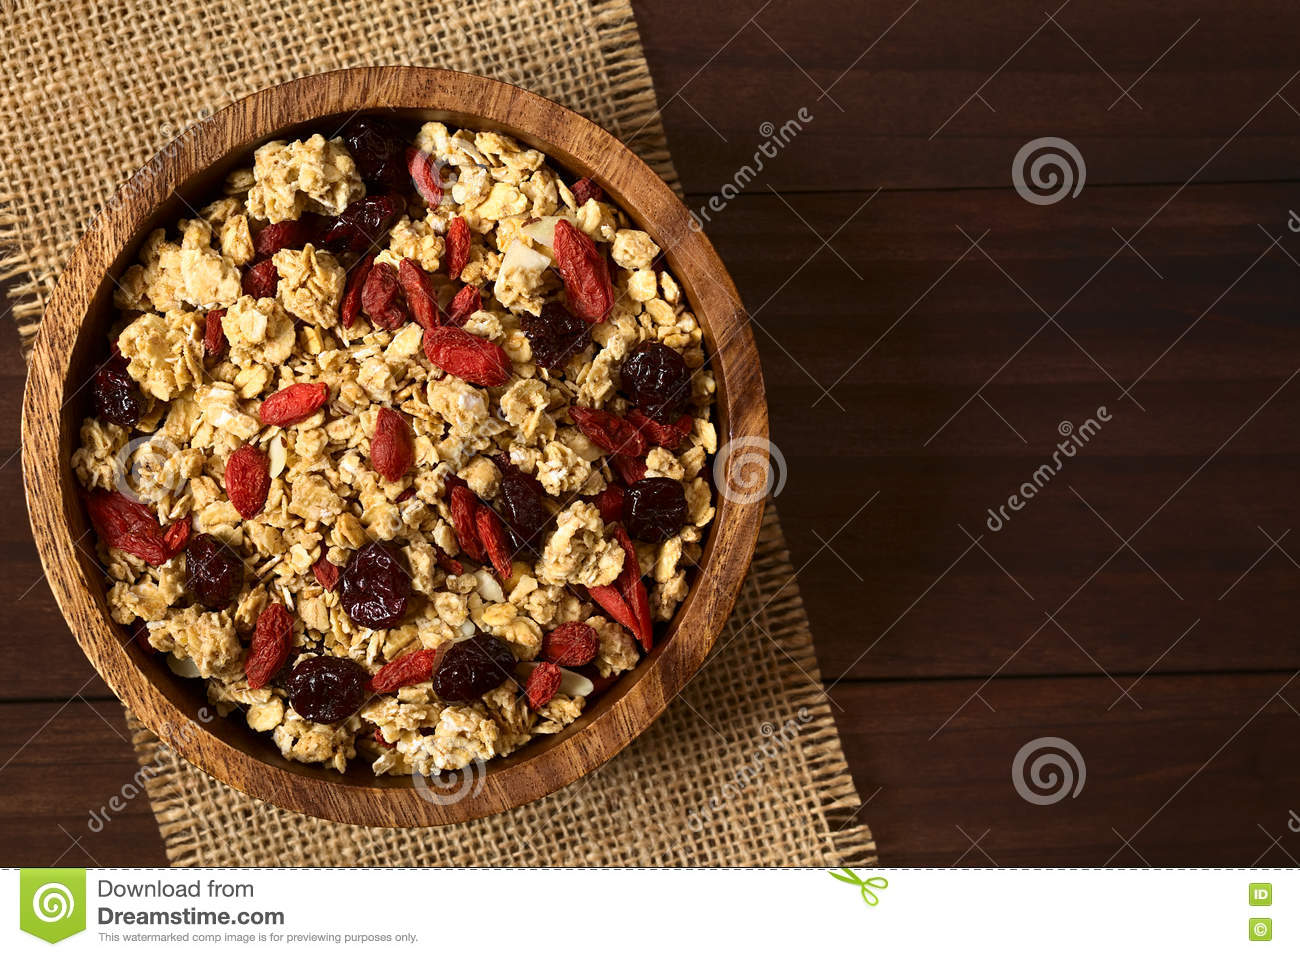 Crunchy Cereal with Dried Berries